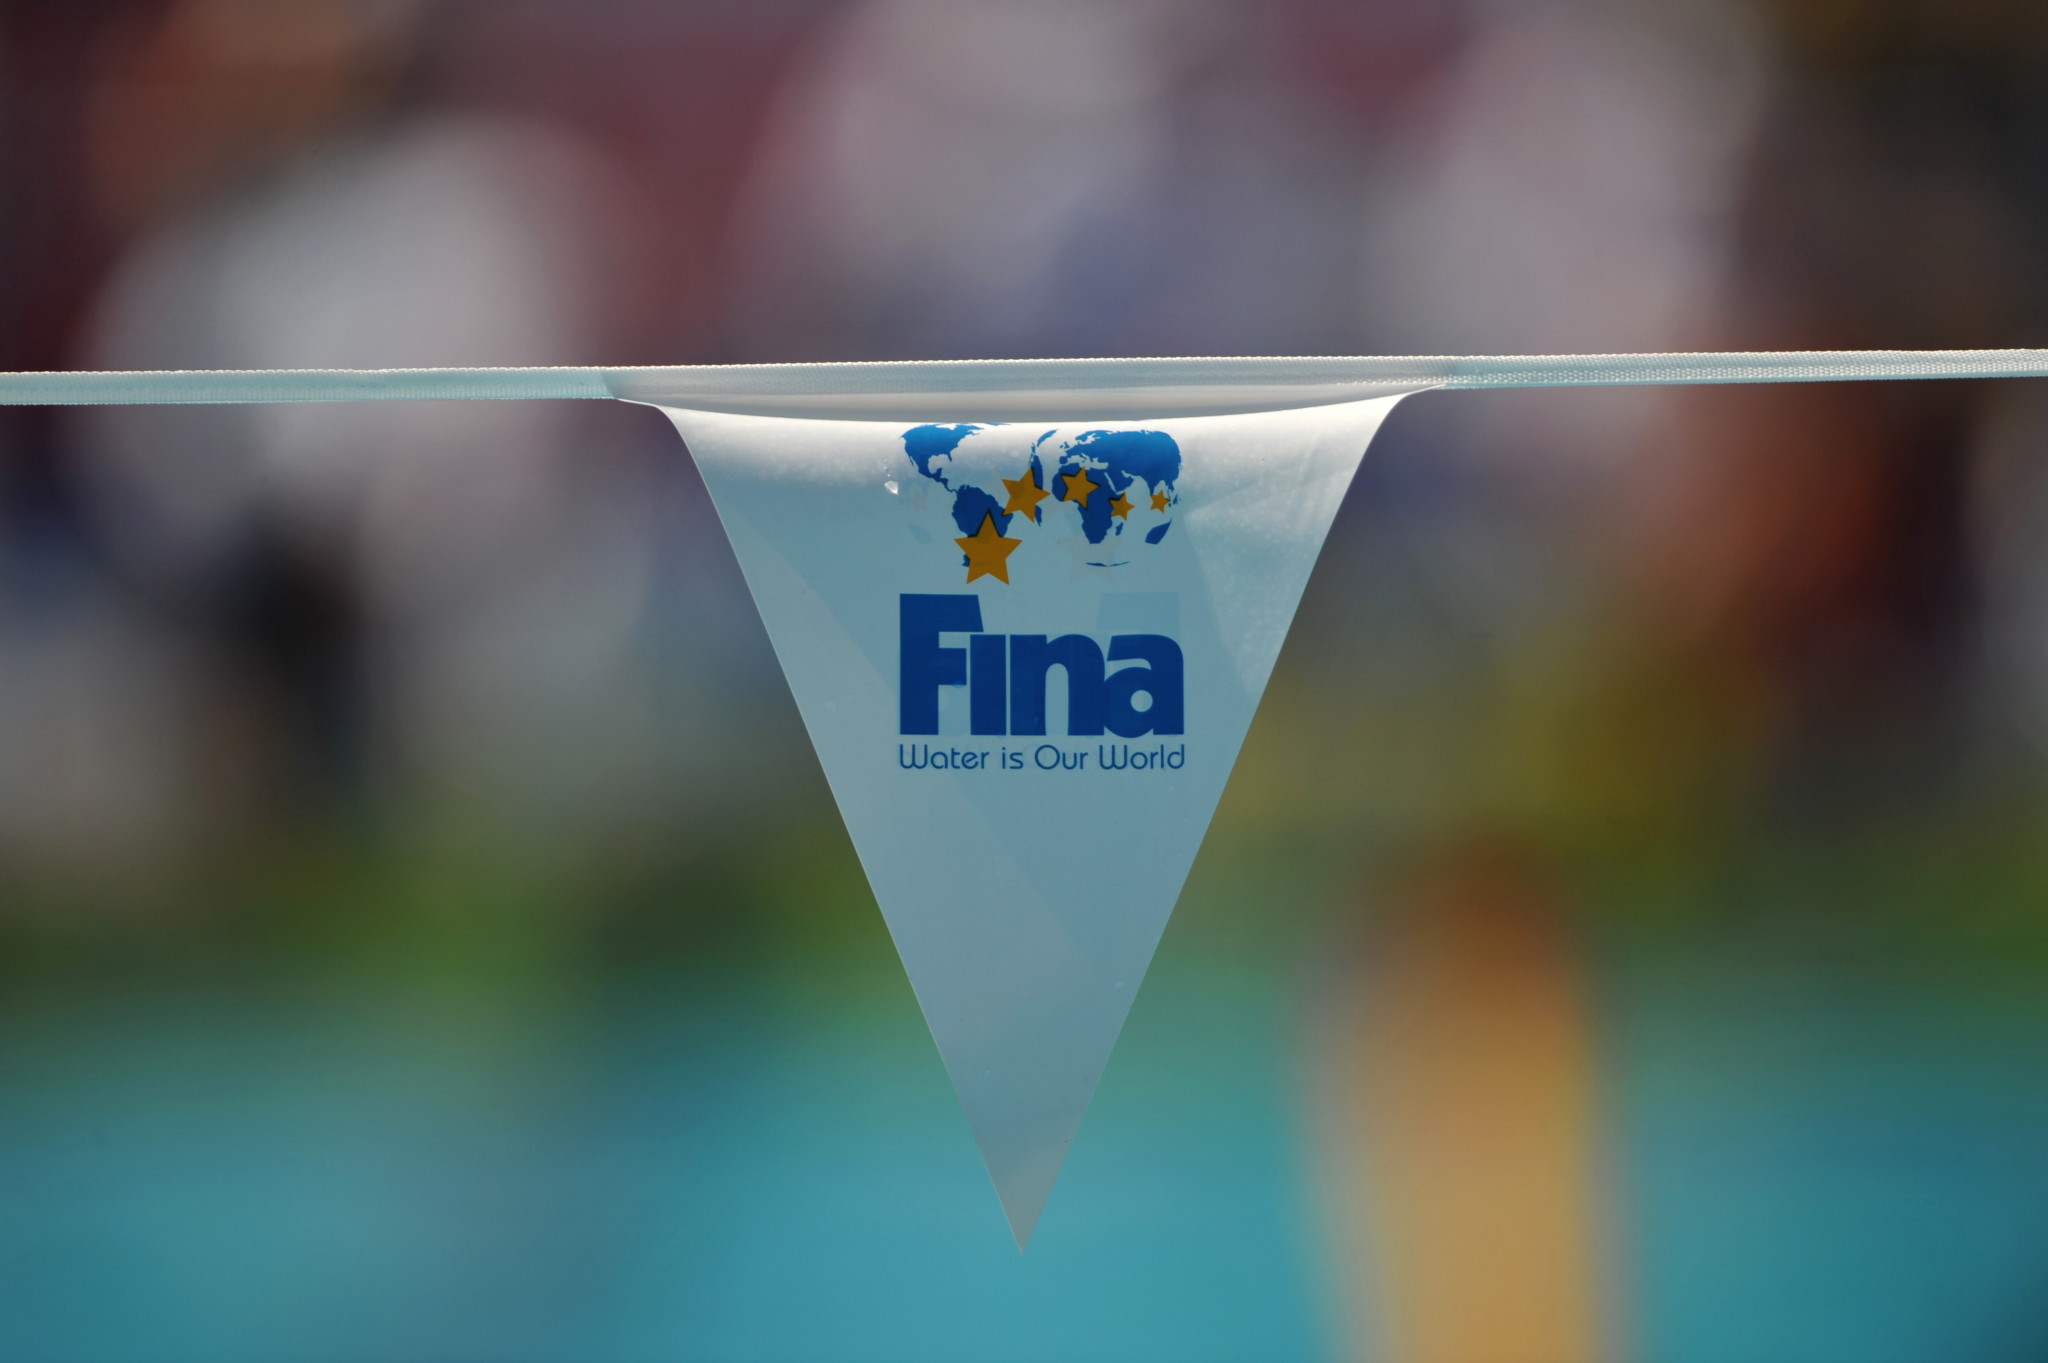 Kenya and Federated States of Micronesia temporarily suspended by FINA